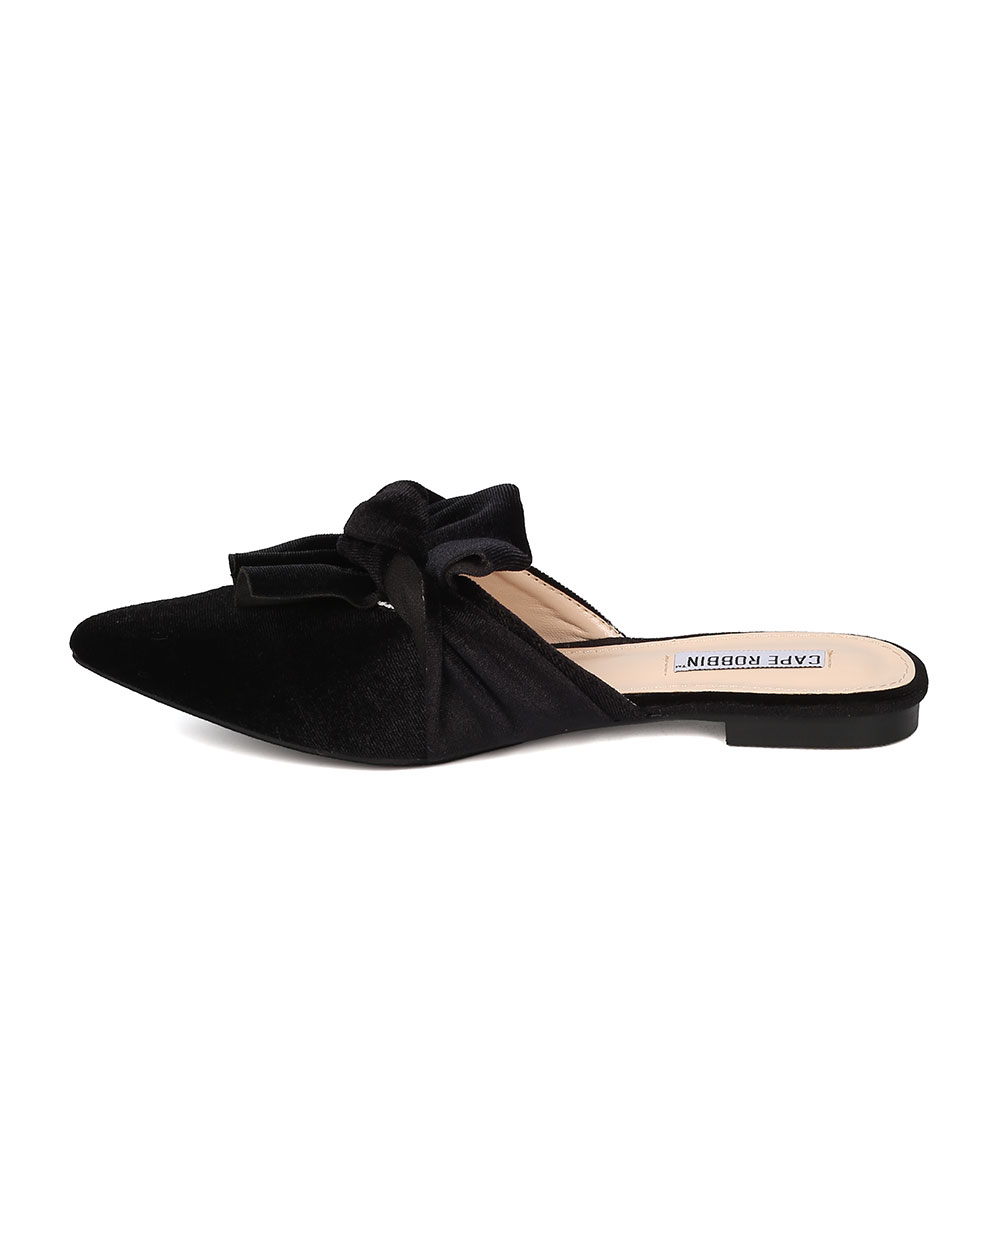 7062377e129c Cape Robbin - Women Knotted Flat Mule - Bow Slip On Sandal - Pointy Toe  Slide - HK10 By Cape Robbin - Walmart.com